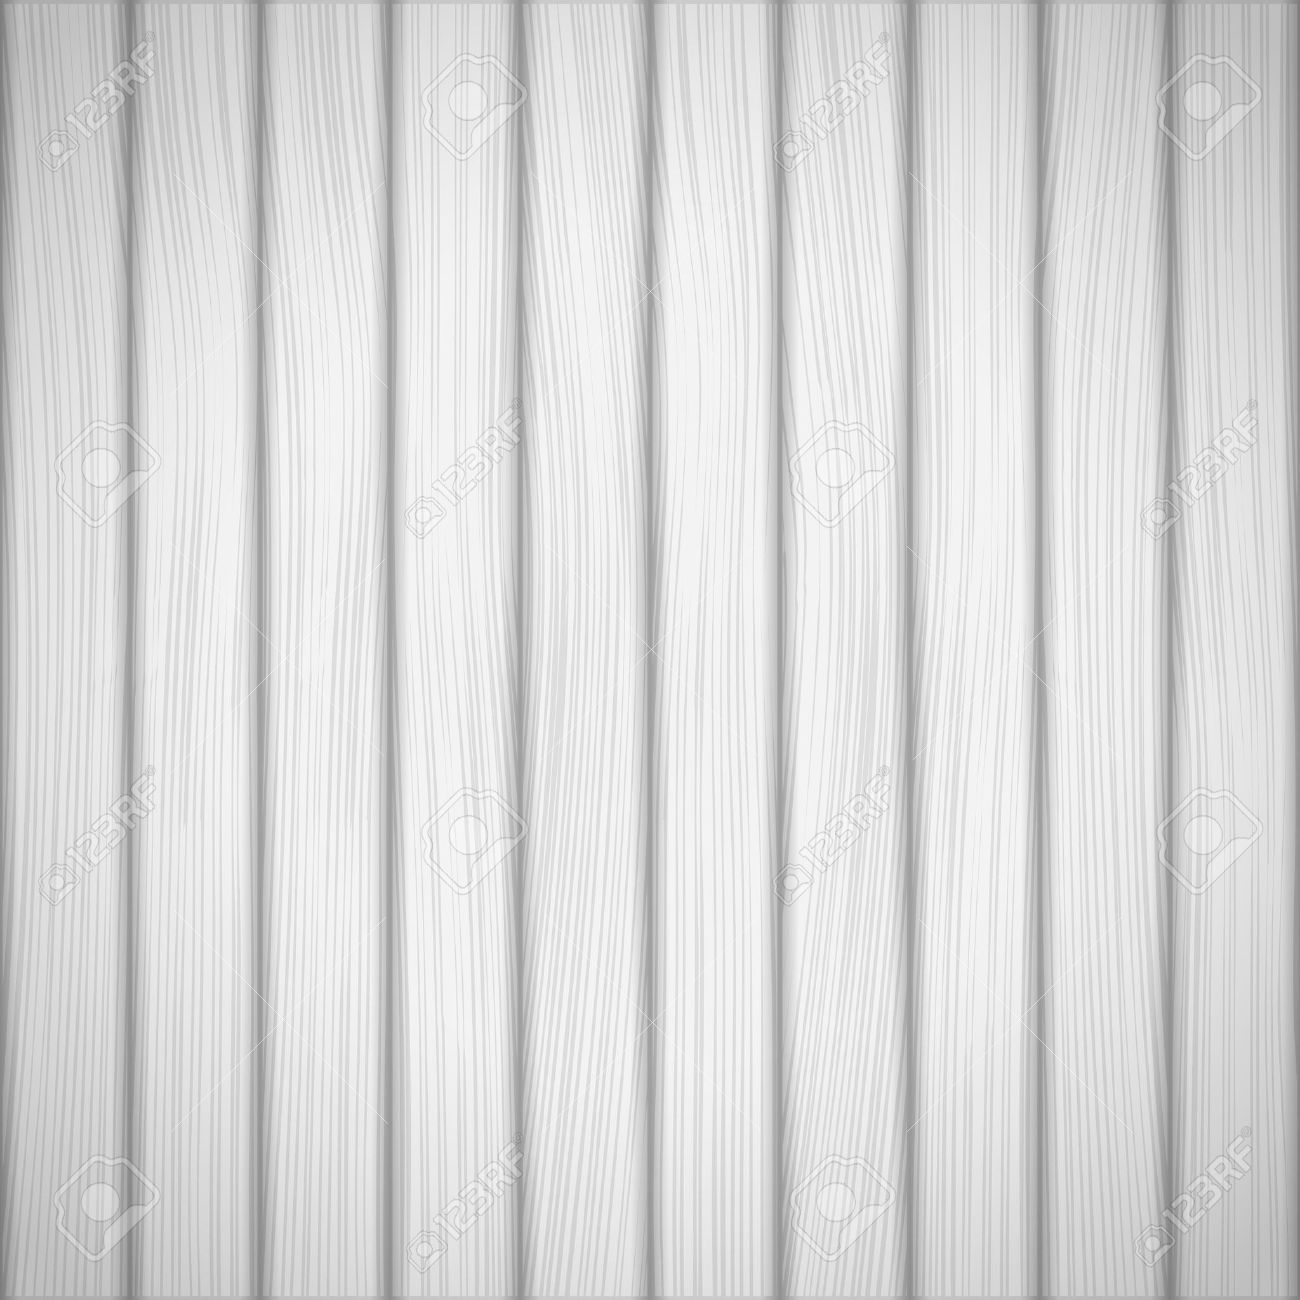 White wood background, Stock Vector - 14637174